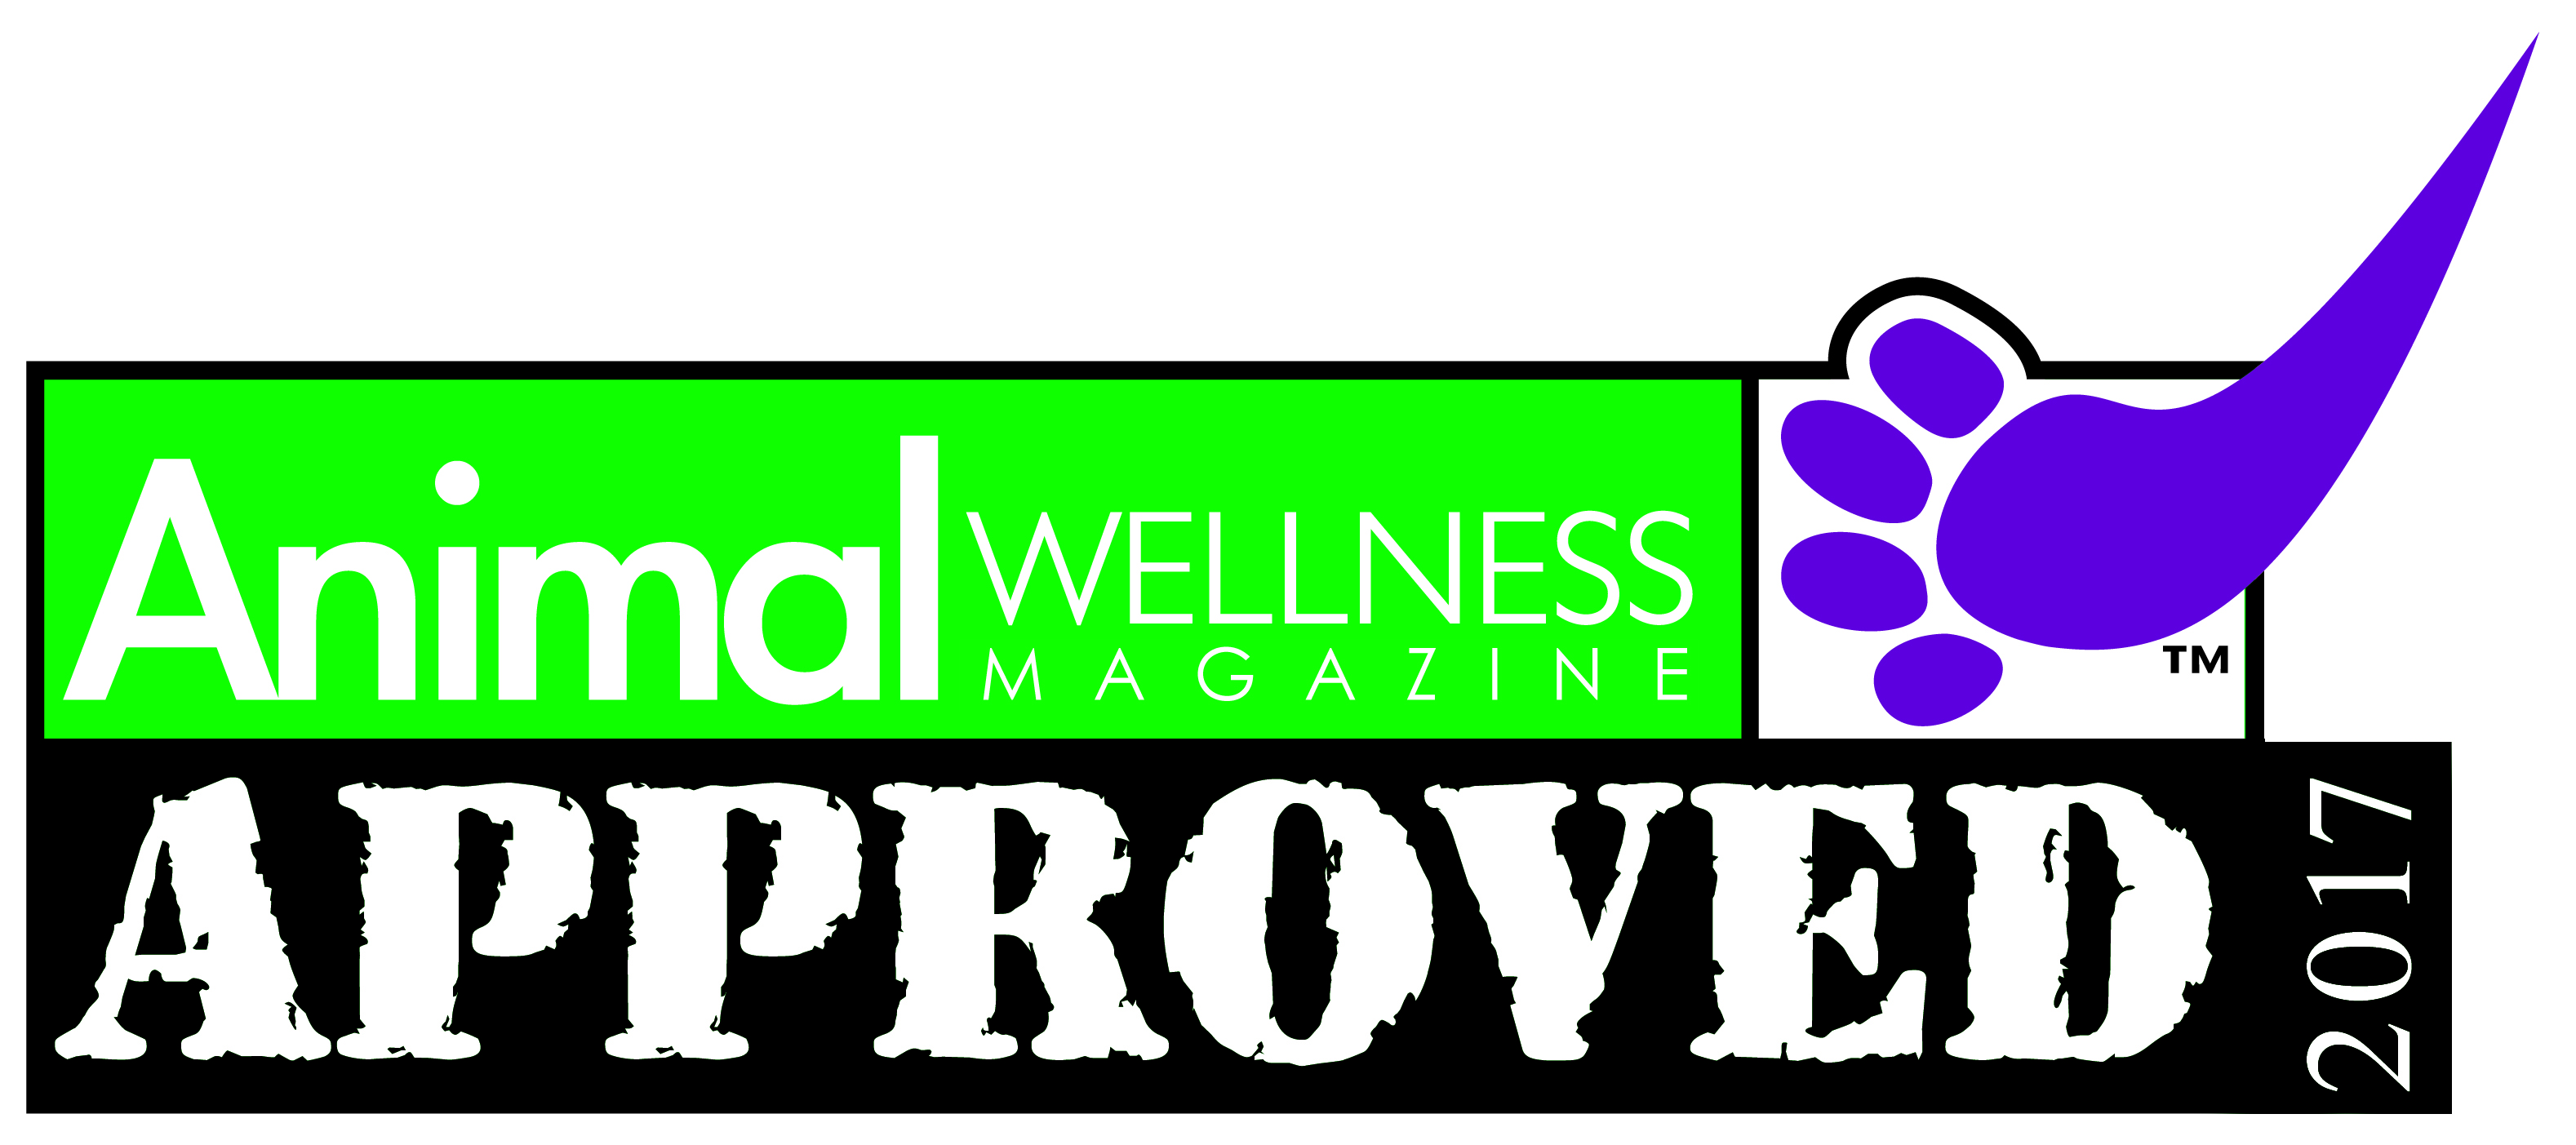 Dr. Frezzo, an independent distributor of doTerra Essential Oils has been selected to be included in our Product Picks feature in the June/July issue of Animal Wellness Magazine! Congratulations!